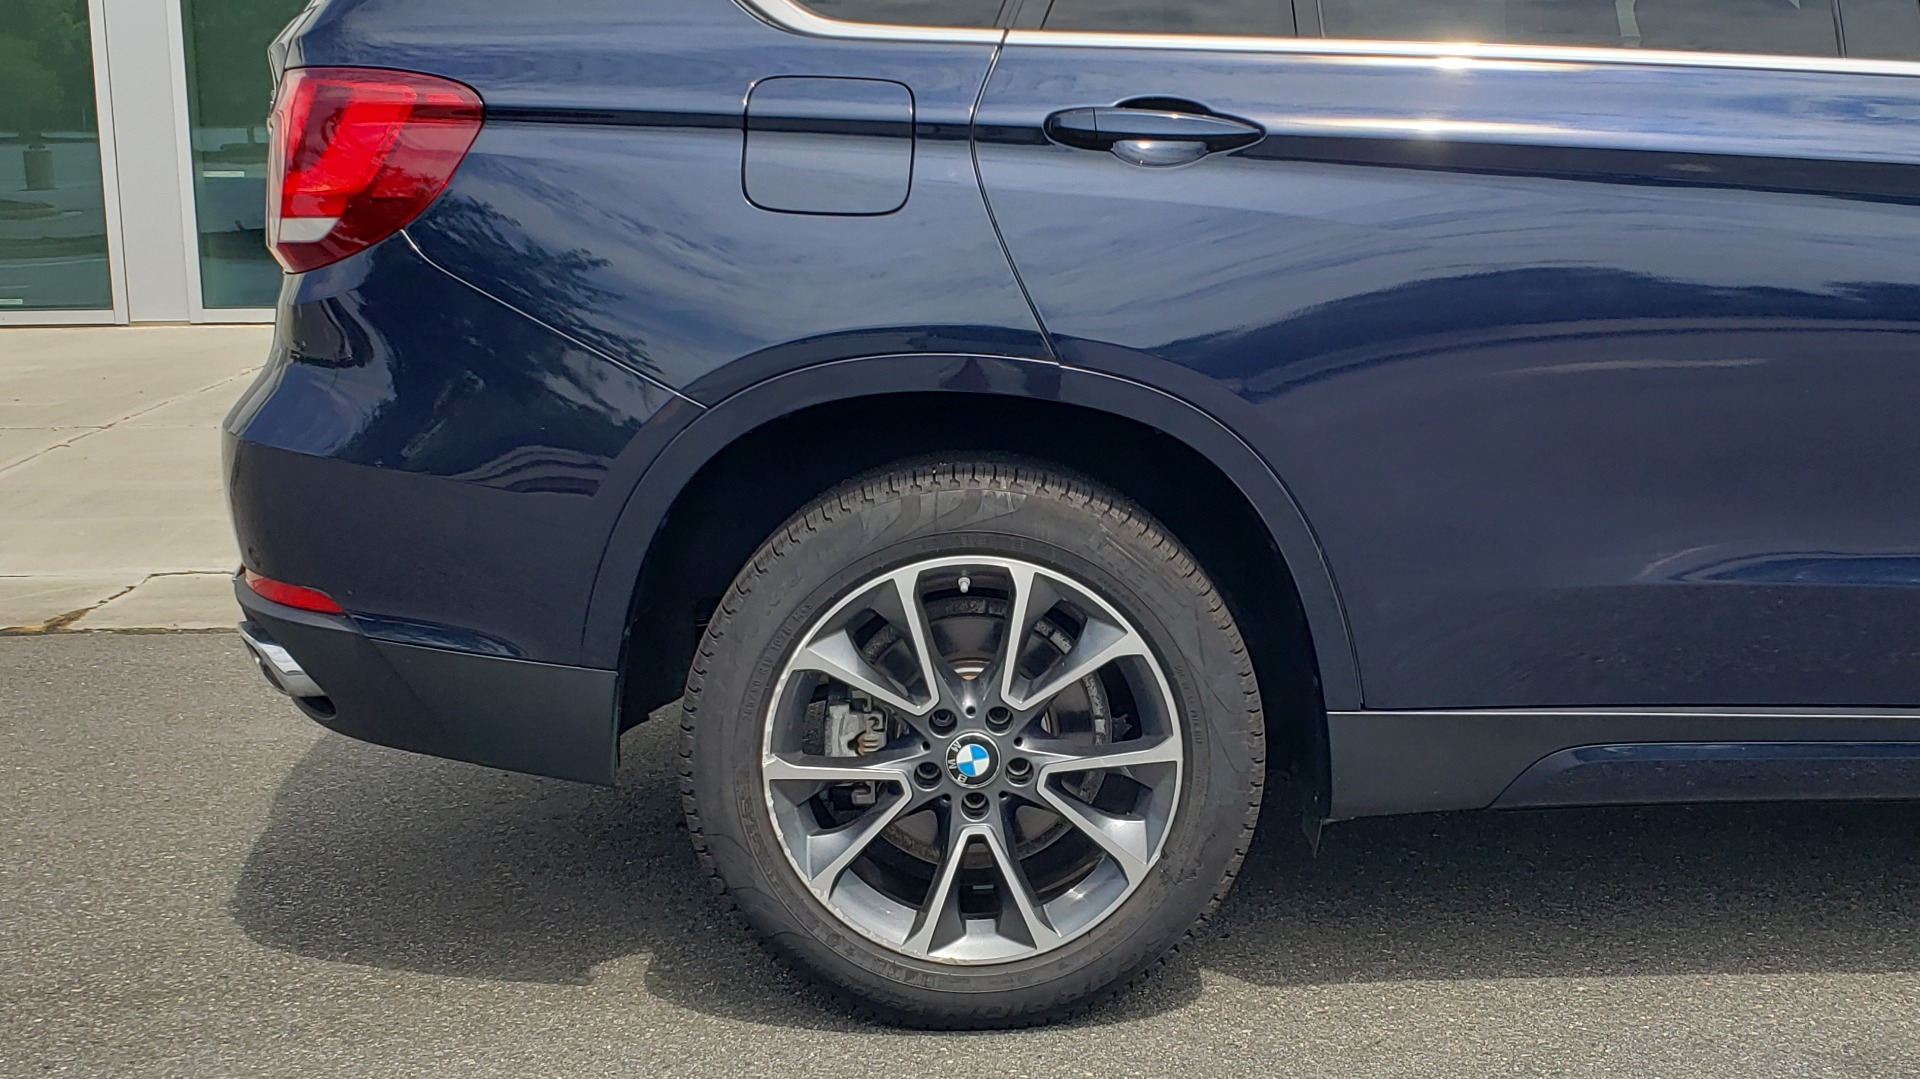 Used 2018 BMW X5 XDRIVE35I PREMIUM / LUXURY / DRVR ASST / HUD / LANE WARNING / REARVIEW for sale $43,695 at Formula Imports in Charlotte NC 28227 85